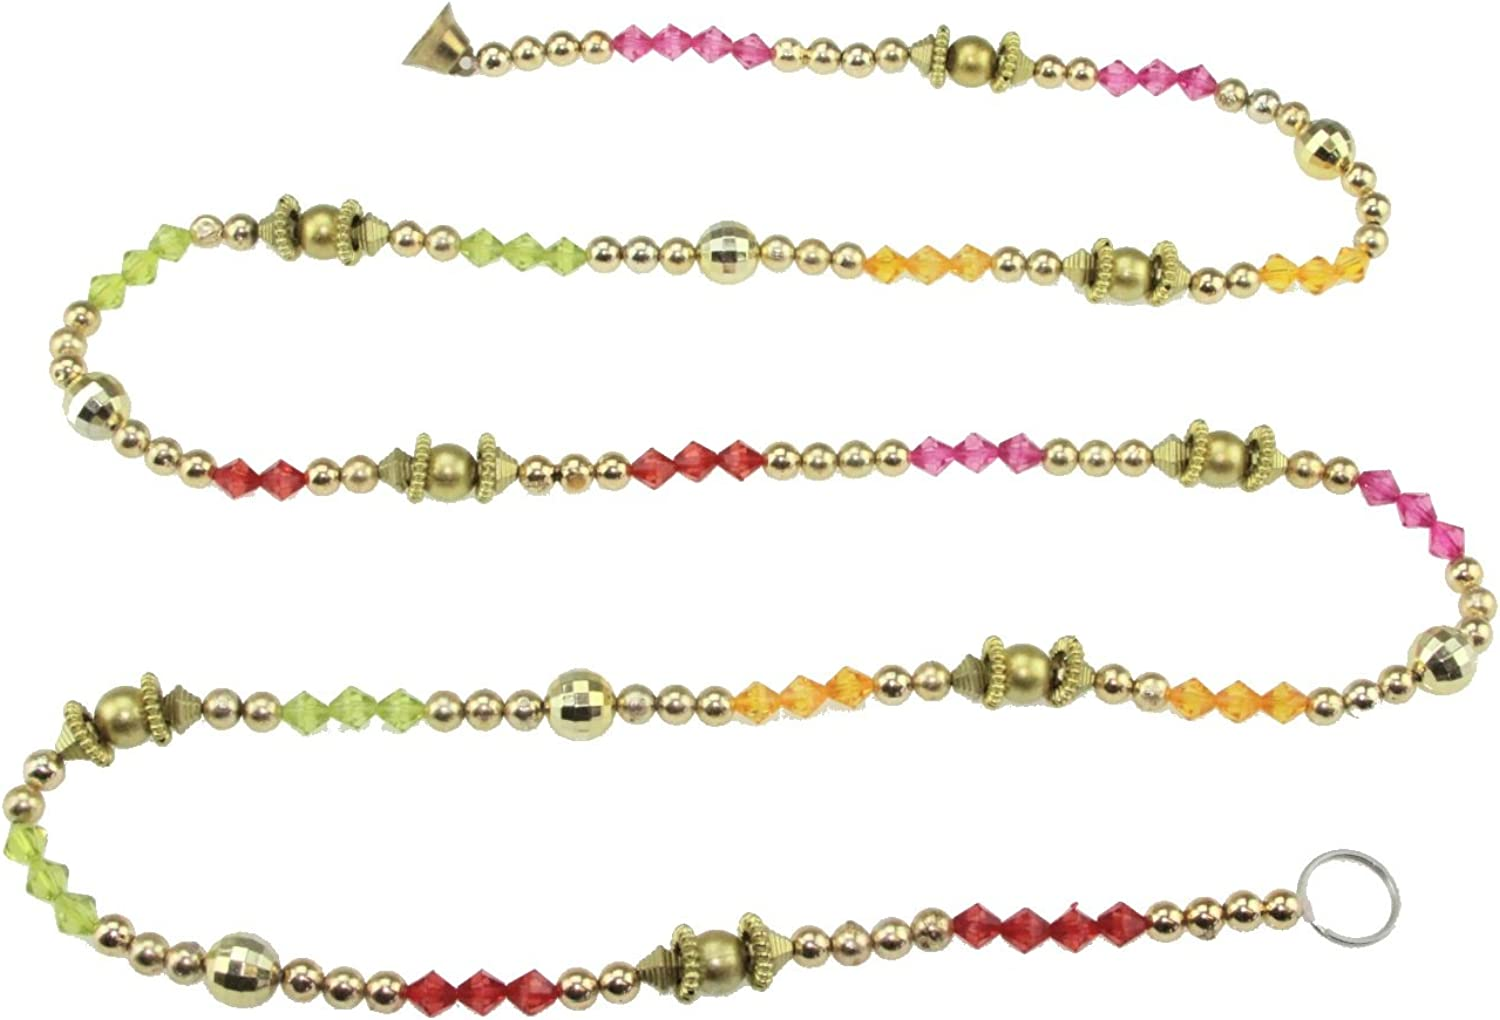 Multicolour Crystal & Round Golden - Beaded Chain Garland Ladi Toran Door-Wall Hanging With Bell -5'5 B073WXFR3S | Up-to-date-styling